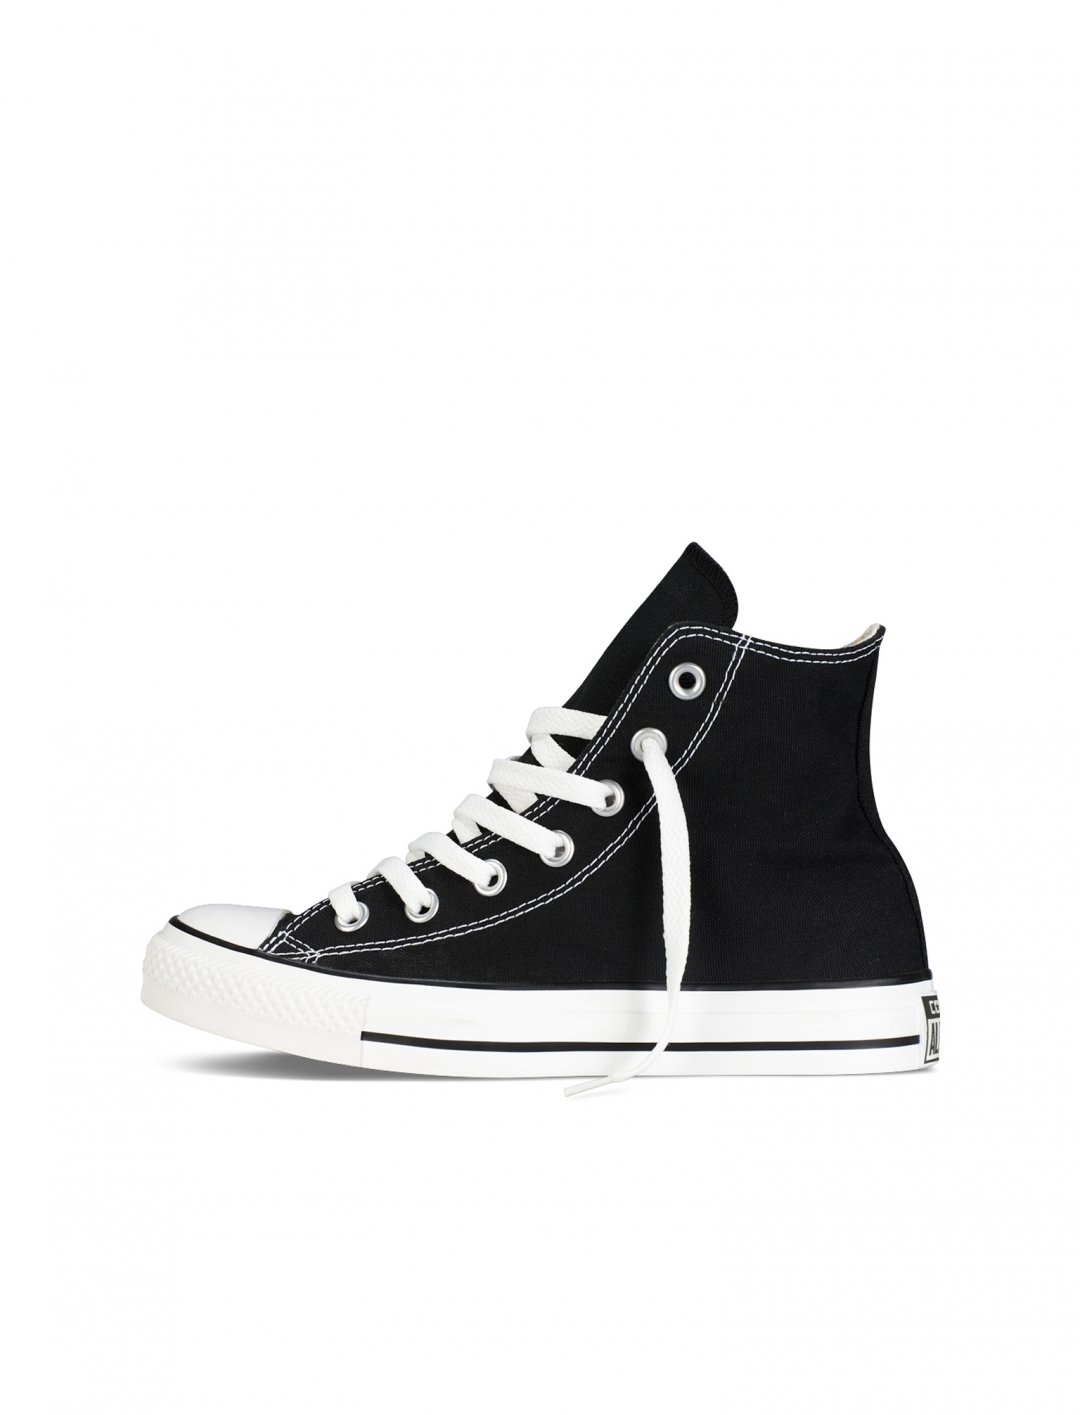 "Ruel's Black Trainers {""id"":12,""product_section_id"":1,""name"":""Shoes"",""order"":12} Converse"